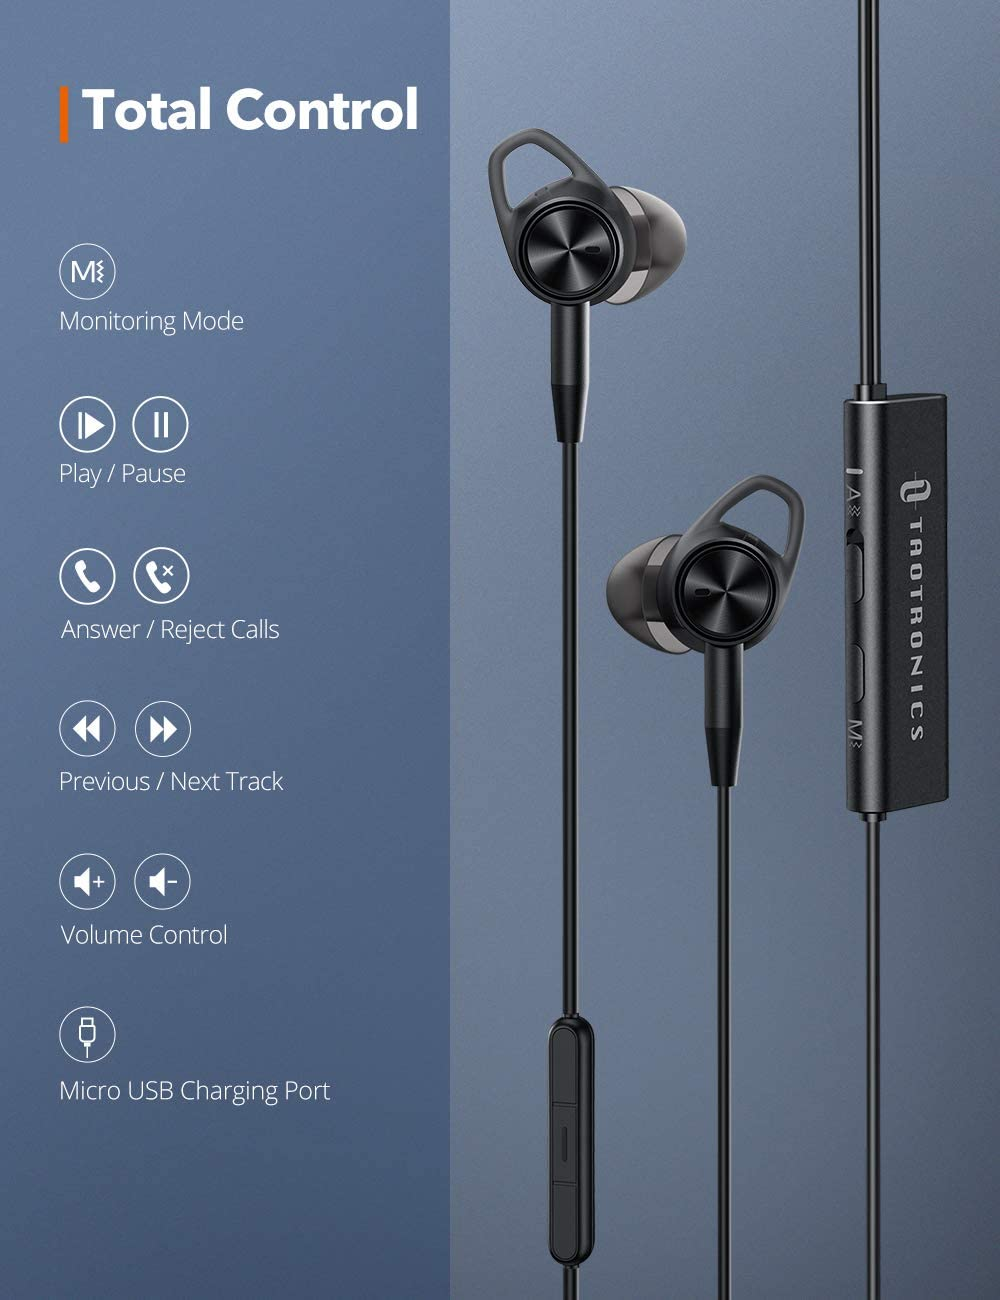 2019 Upgrade Wired Earbuds Wired Headphones with 15 Hours Playtime Aware Mode TaoTronics Active Noise Cancelling Headphones